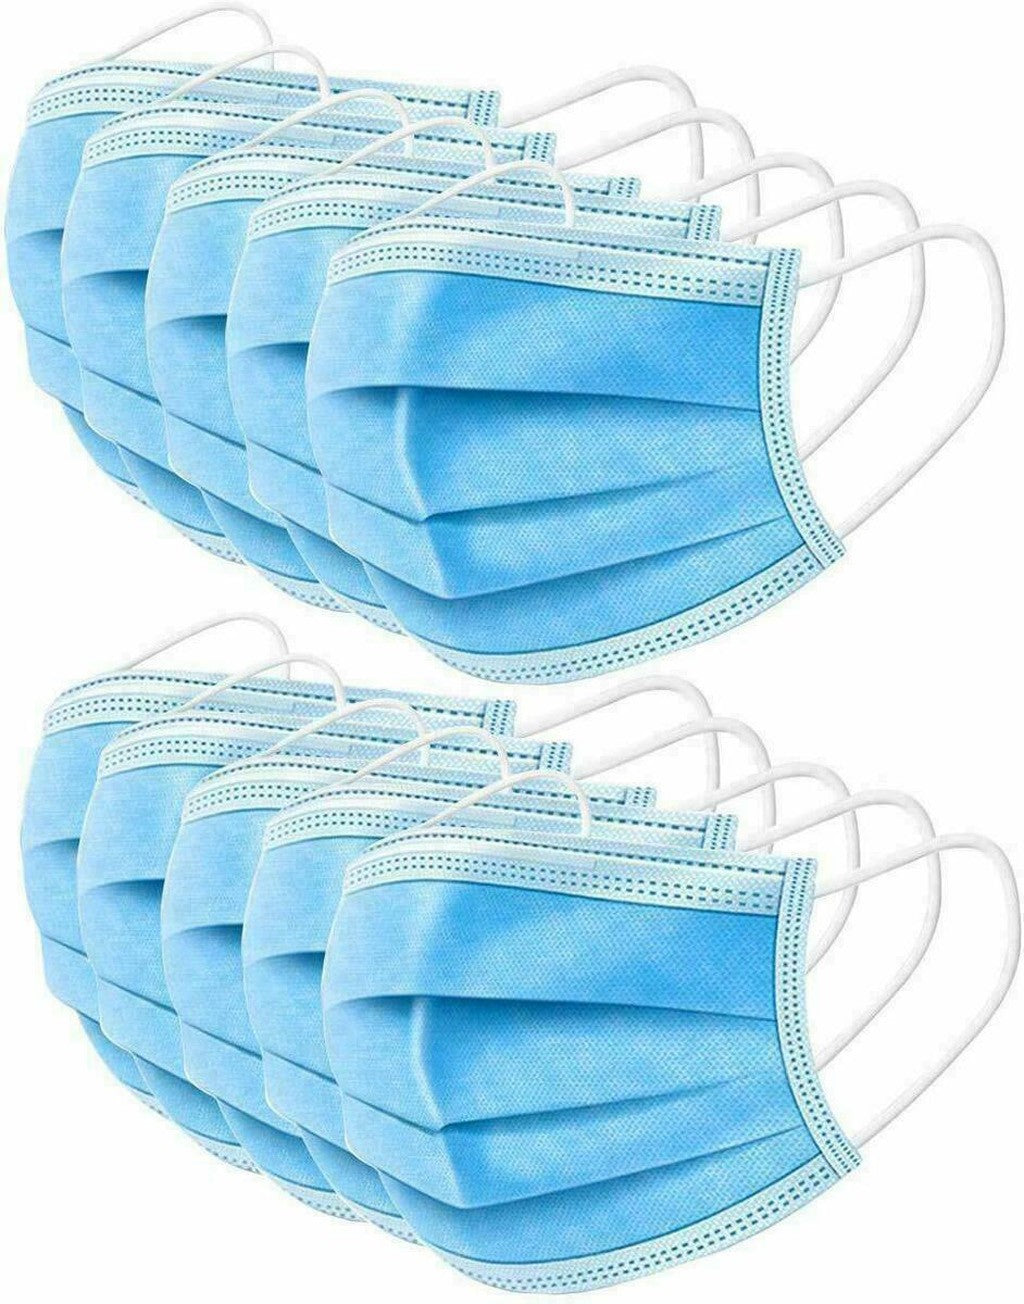 50PC Disposable Face Mas-k Dental Industrial 3Ply Ear Loop